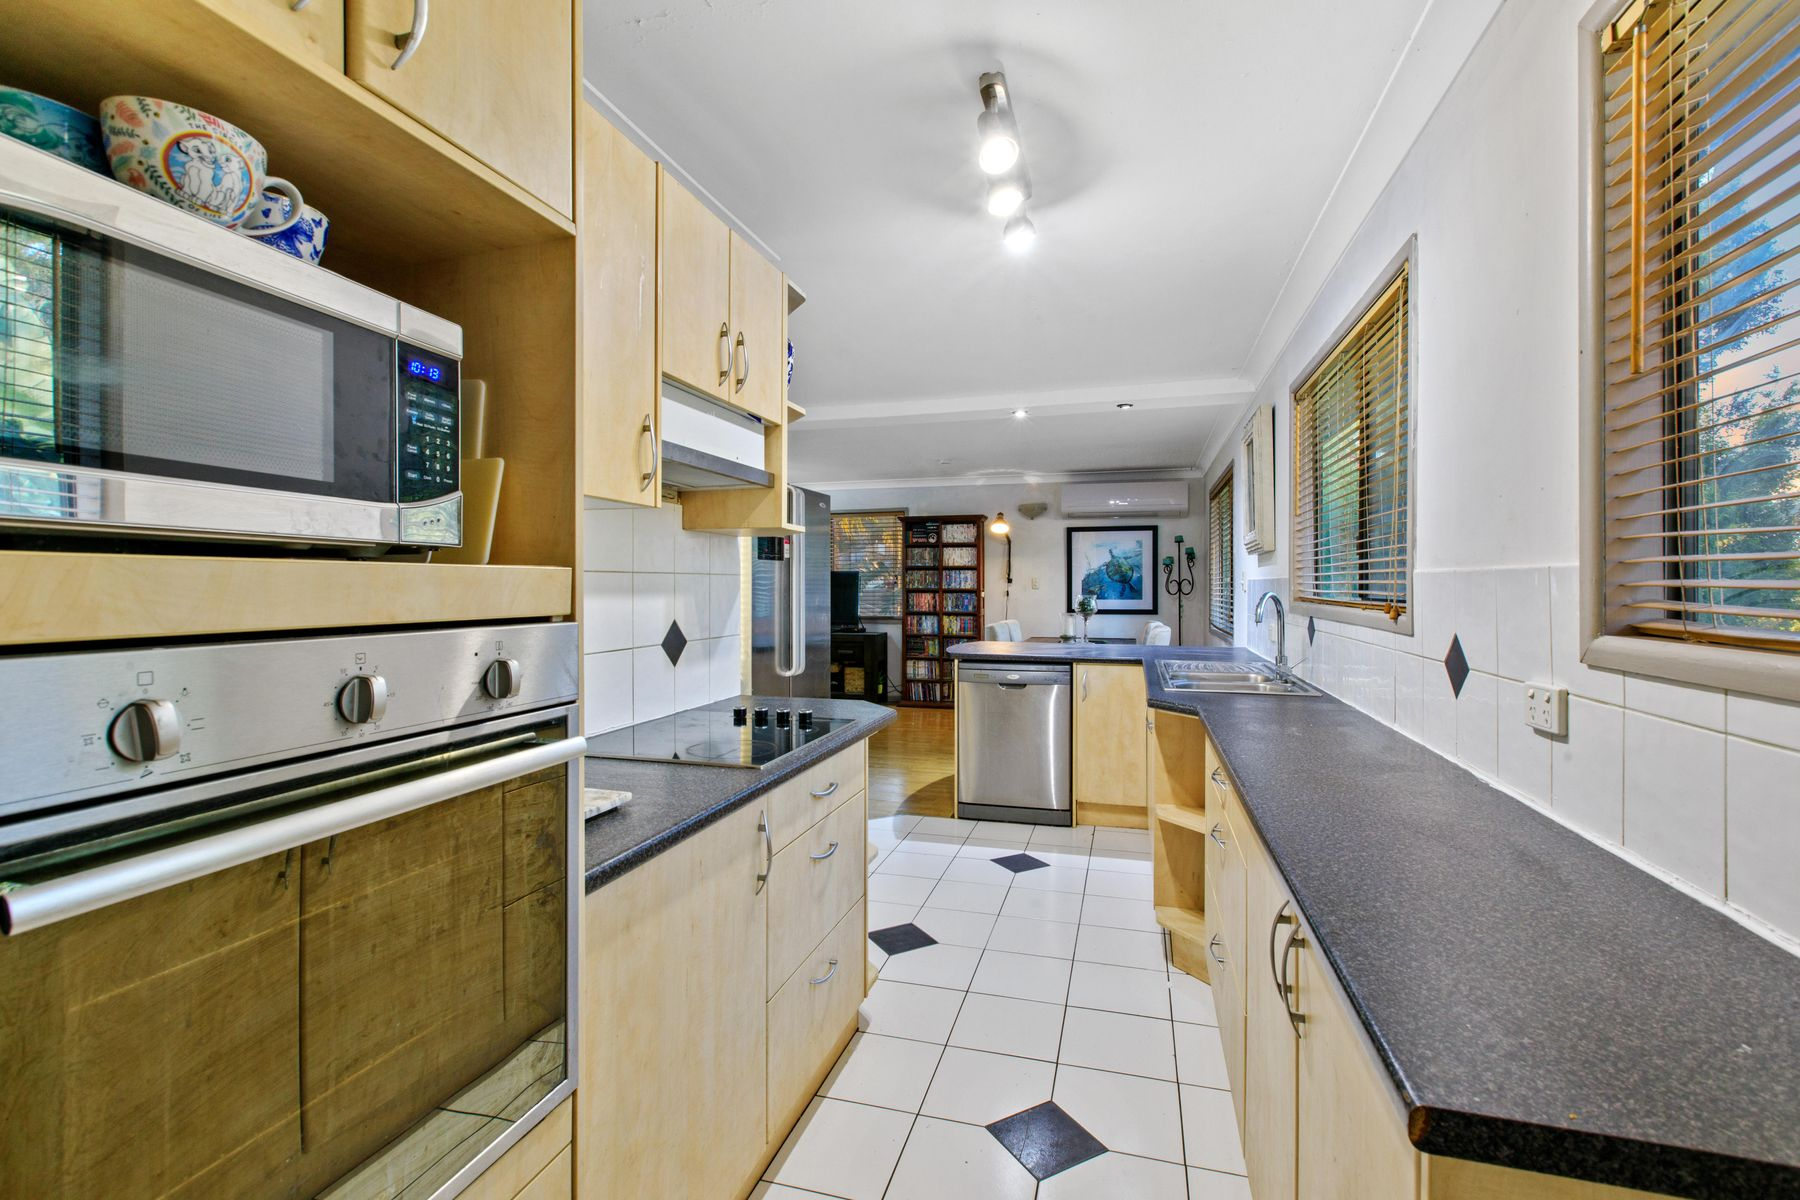 956 Rochedale Road, Rochedale South, QLD 4123